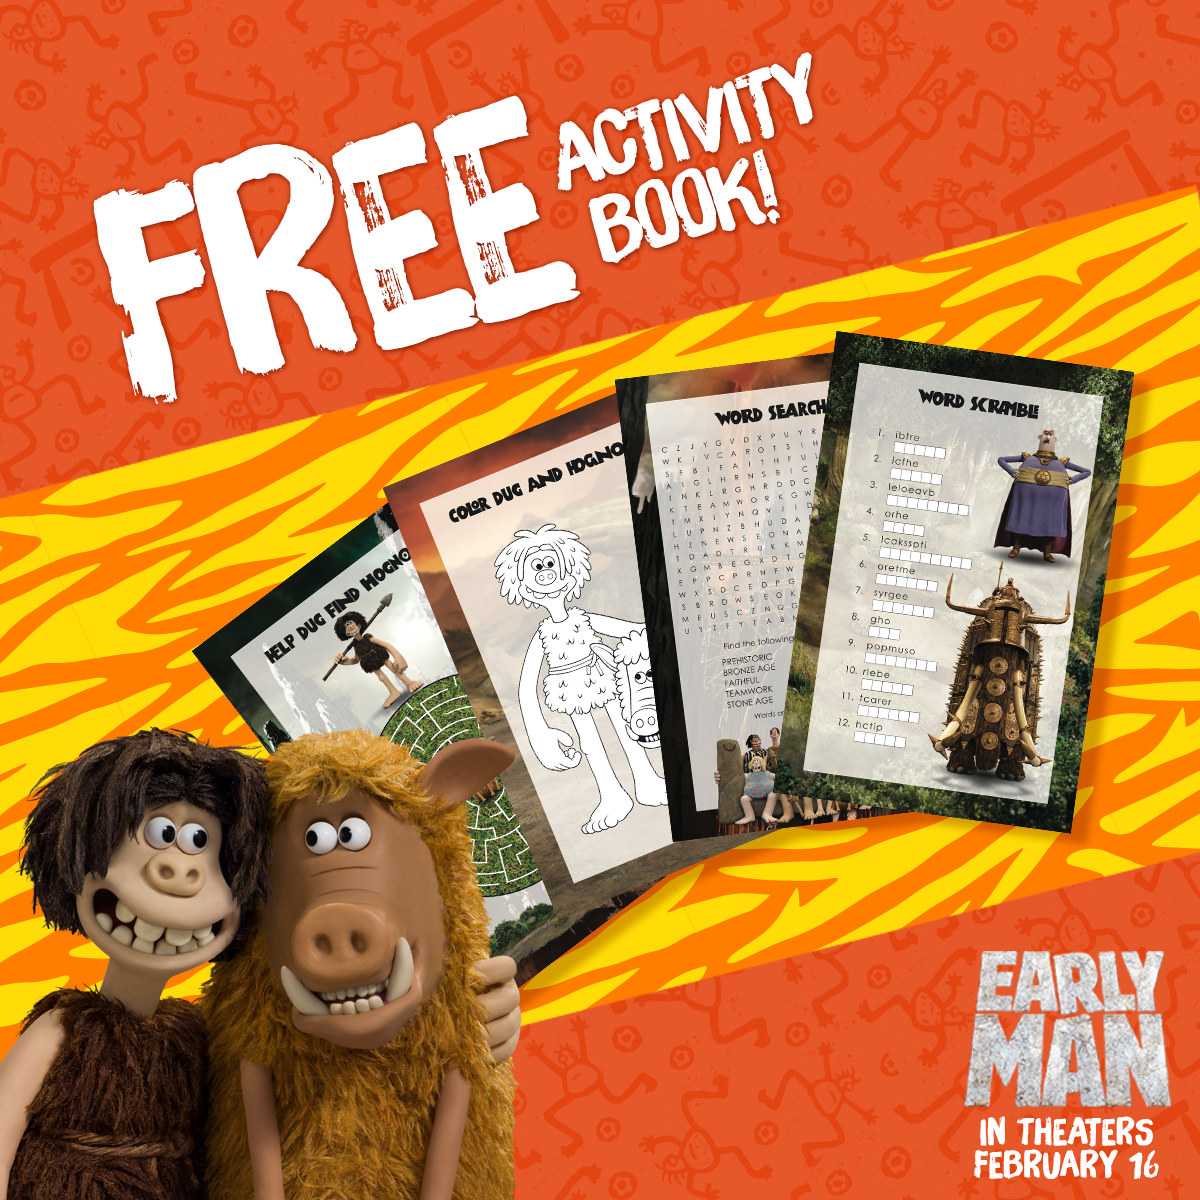 Early Man Activity Book #EarlyMan #movie #movies #giveaway #ad